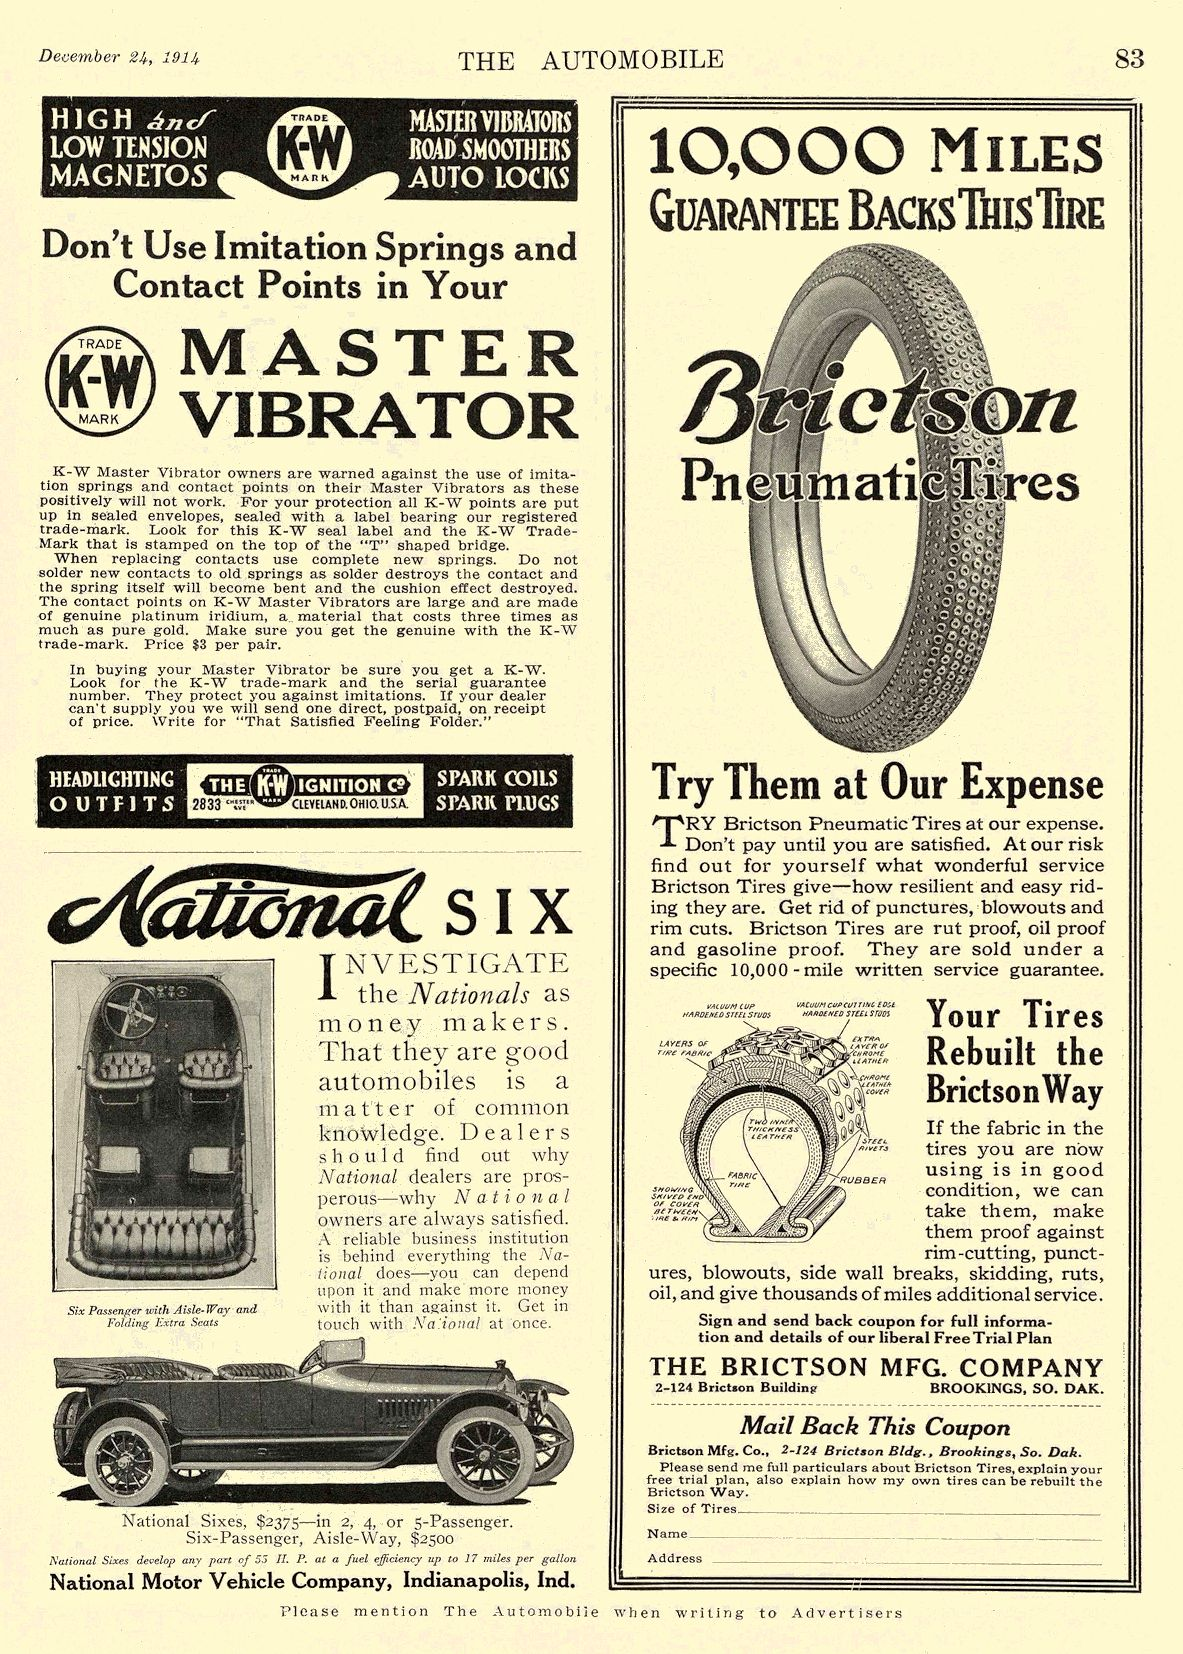 1914 12 24 NATIONAL National SIX National Motor Vehicle Company Indianapolis, IND THE AUTOMOBILE December 24, 1914 8.5″x12″ page 83